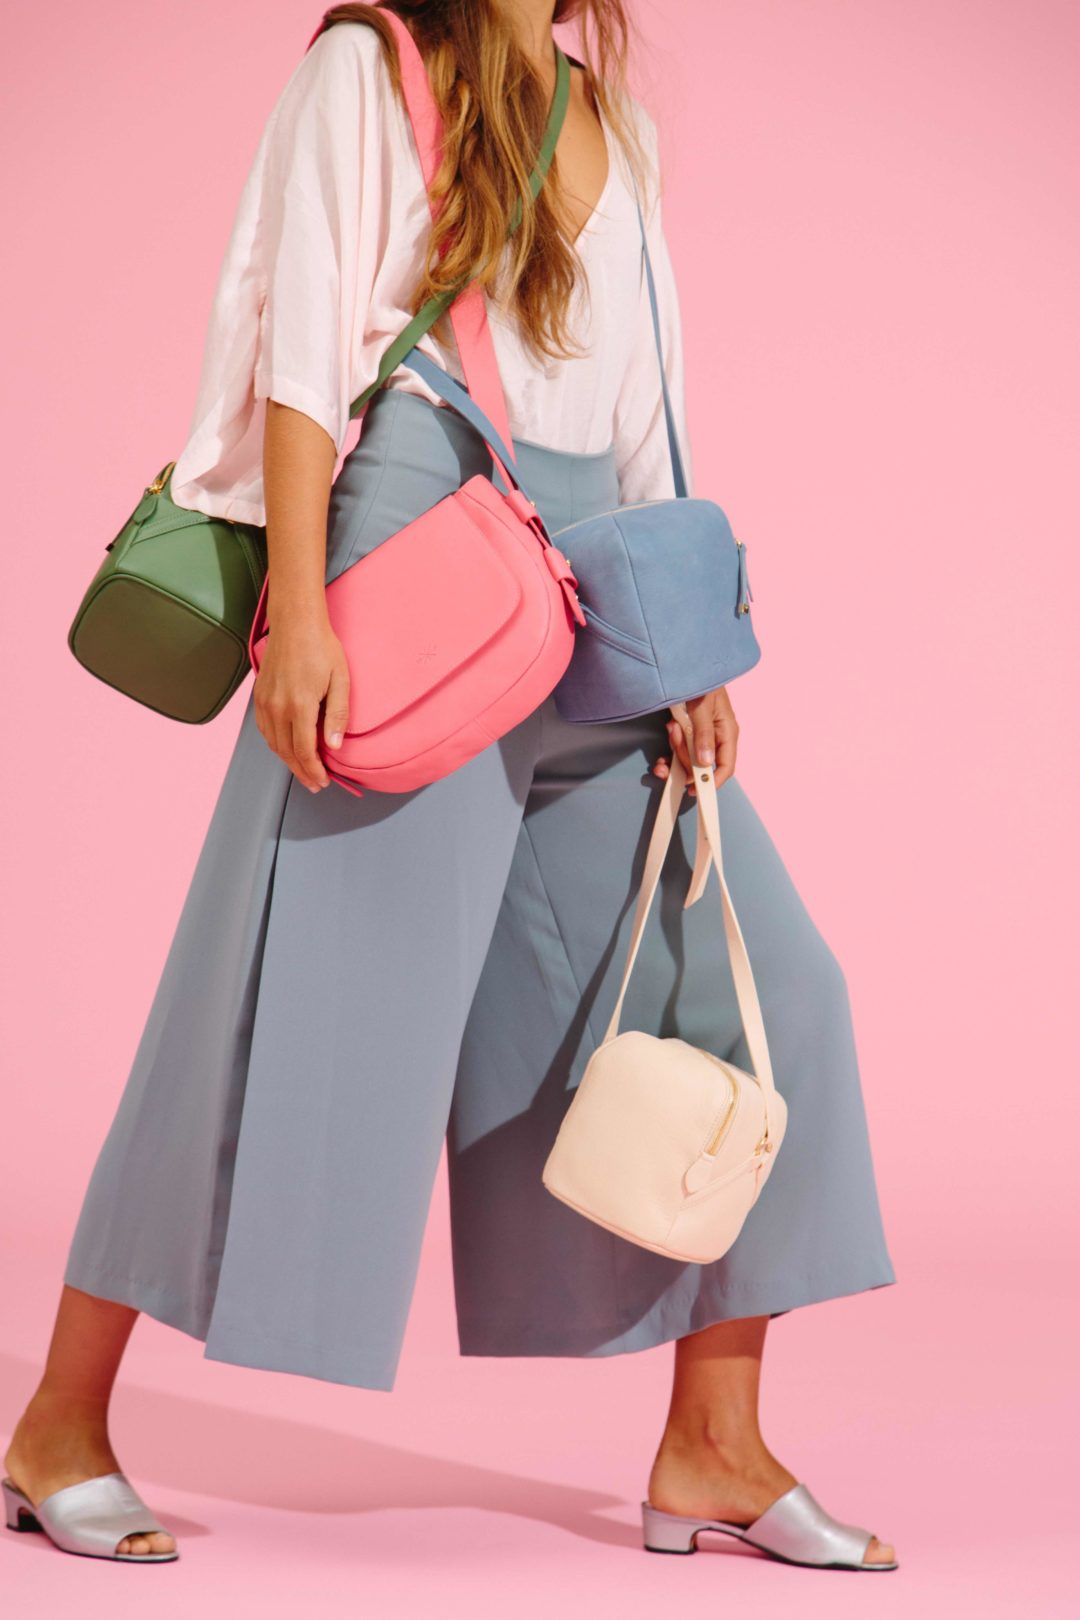 Manufacture Pascal Leather bags - different models